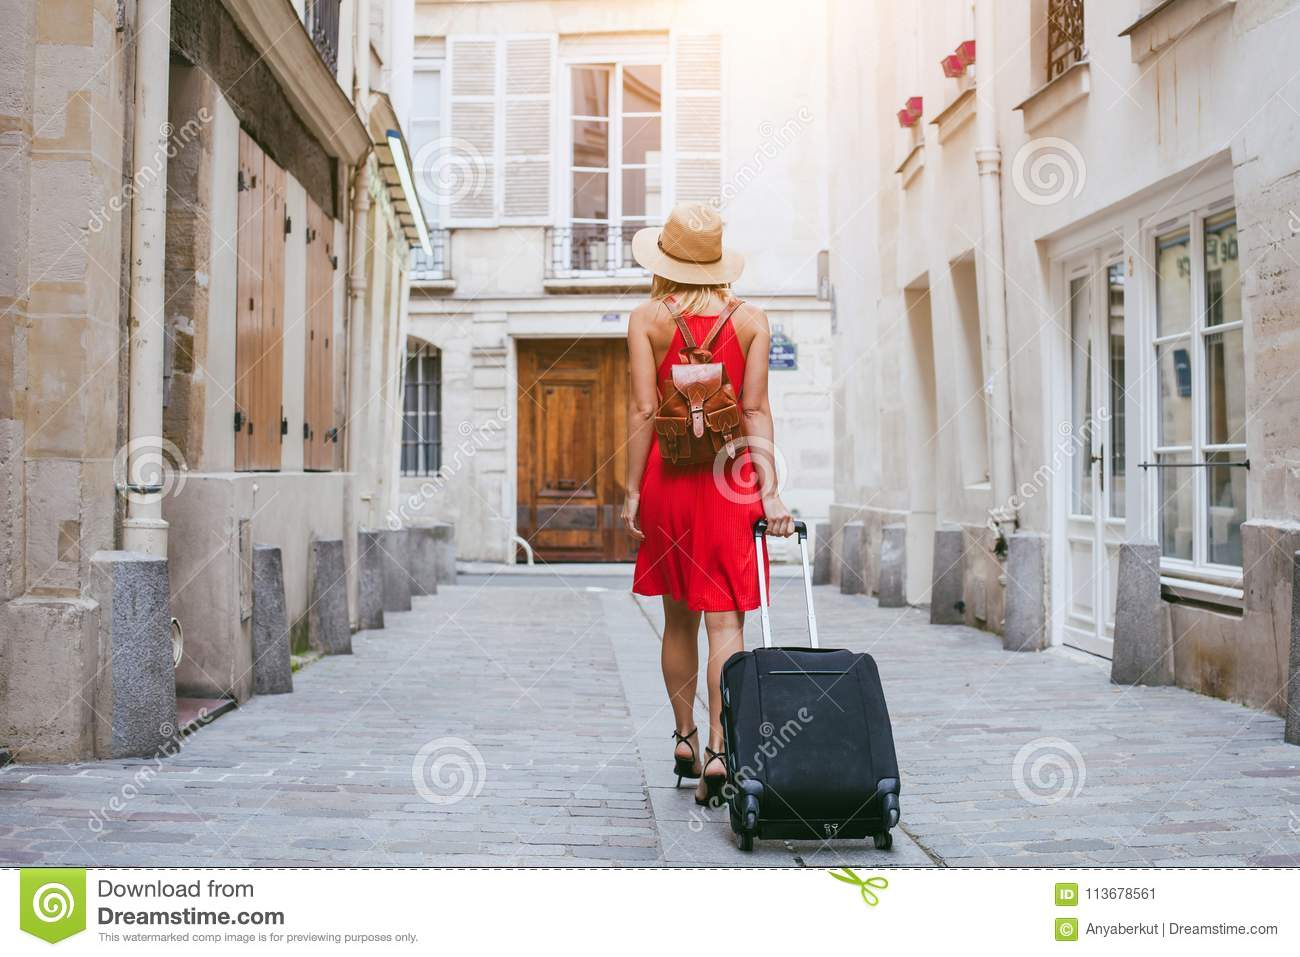 Travel background, woman tourist walking with suitcase on the street in european city, tourism